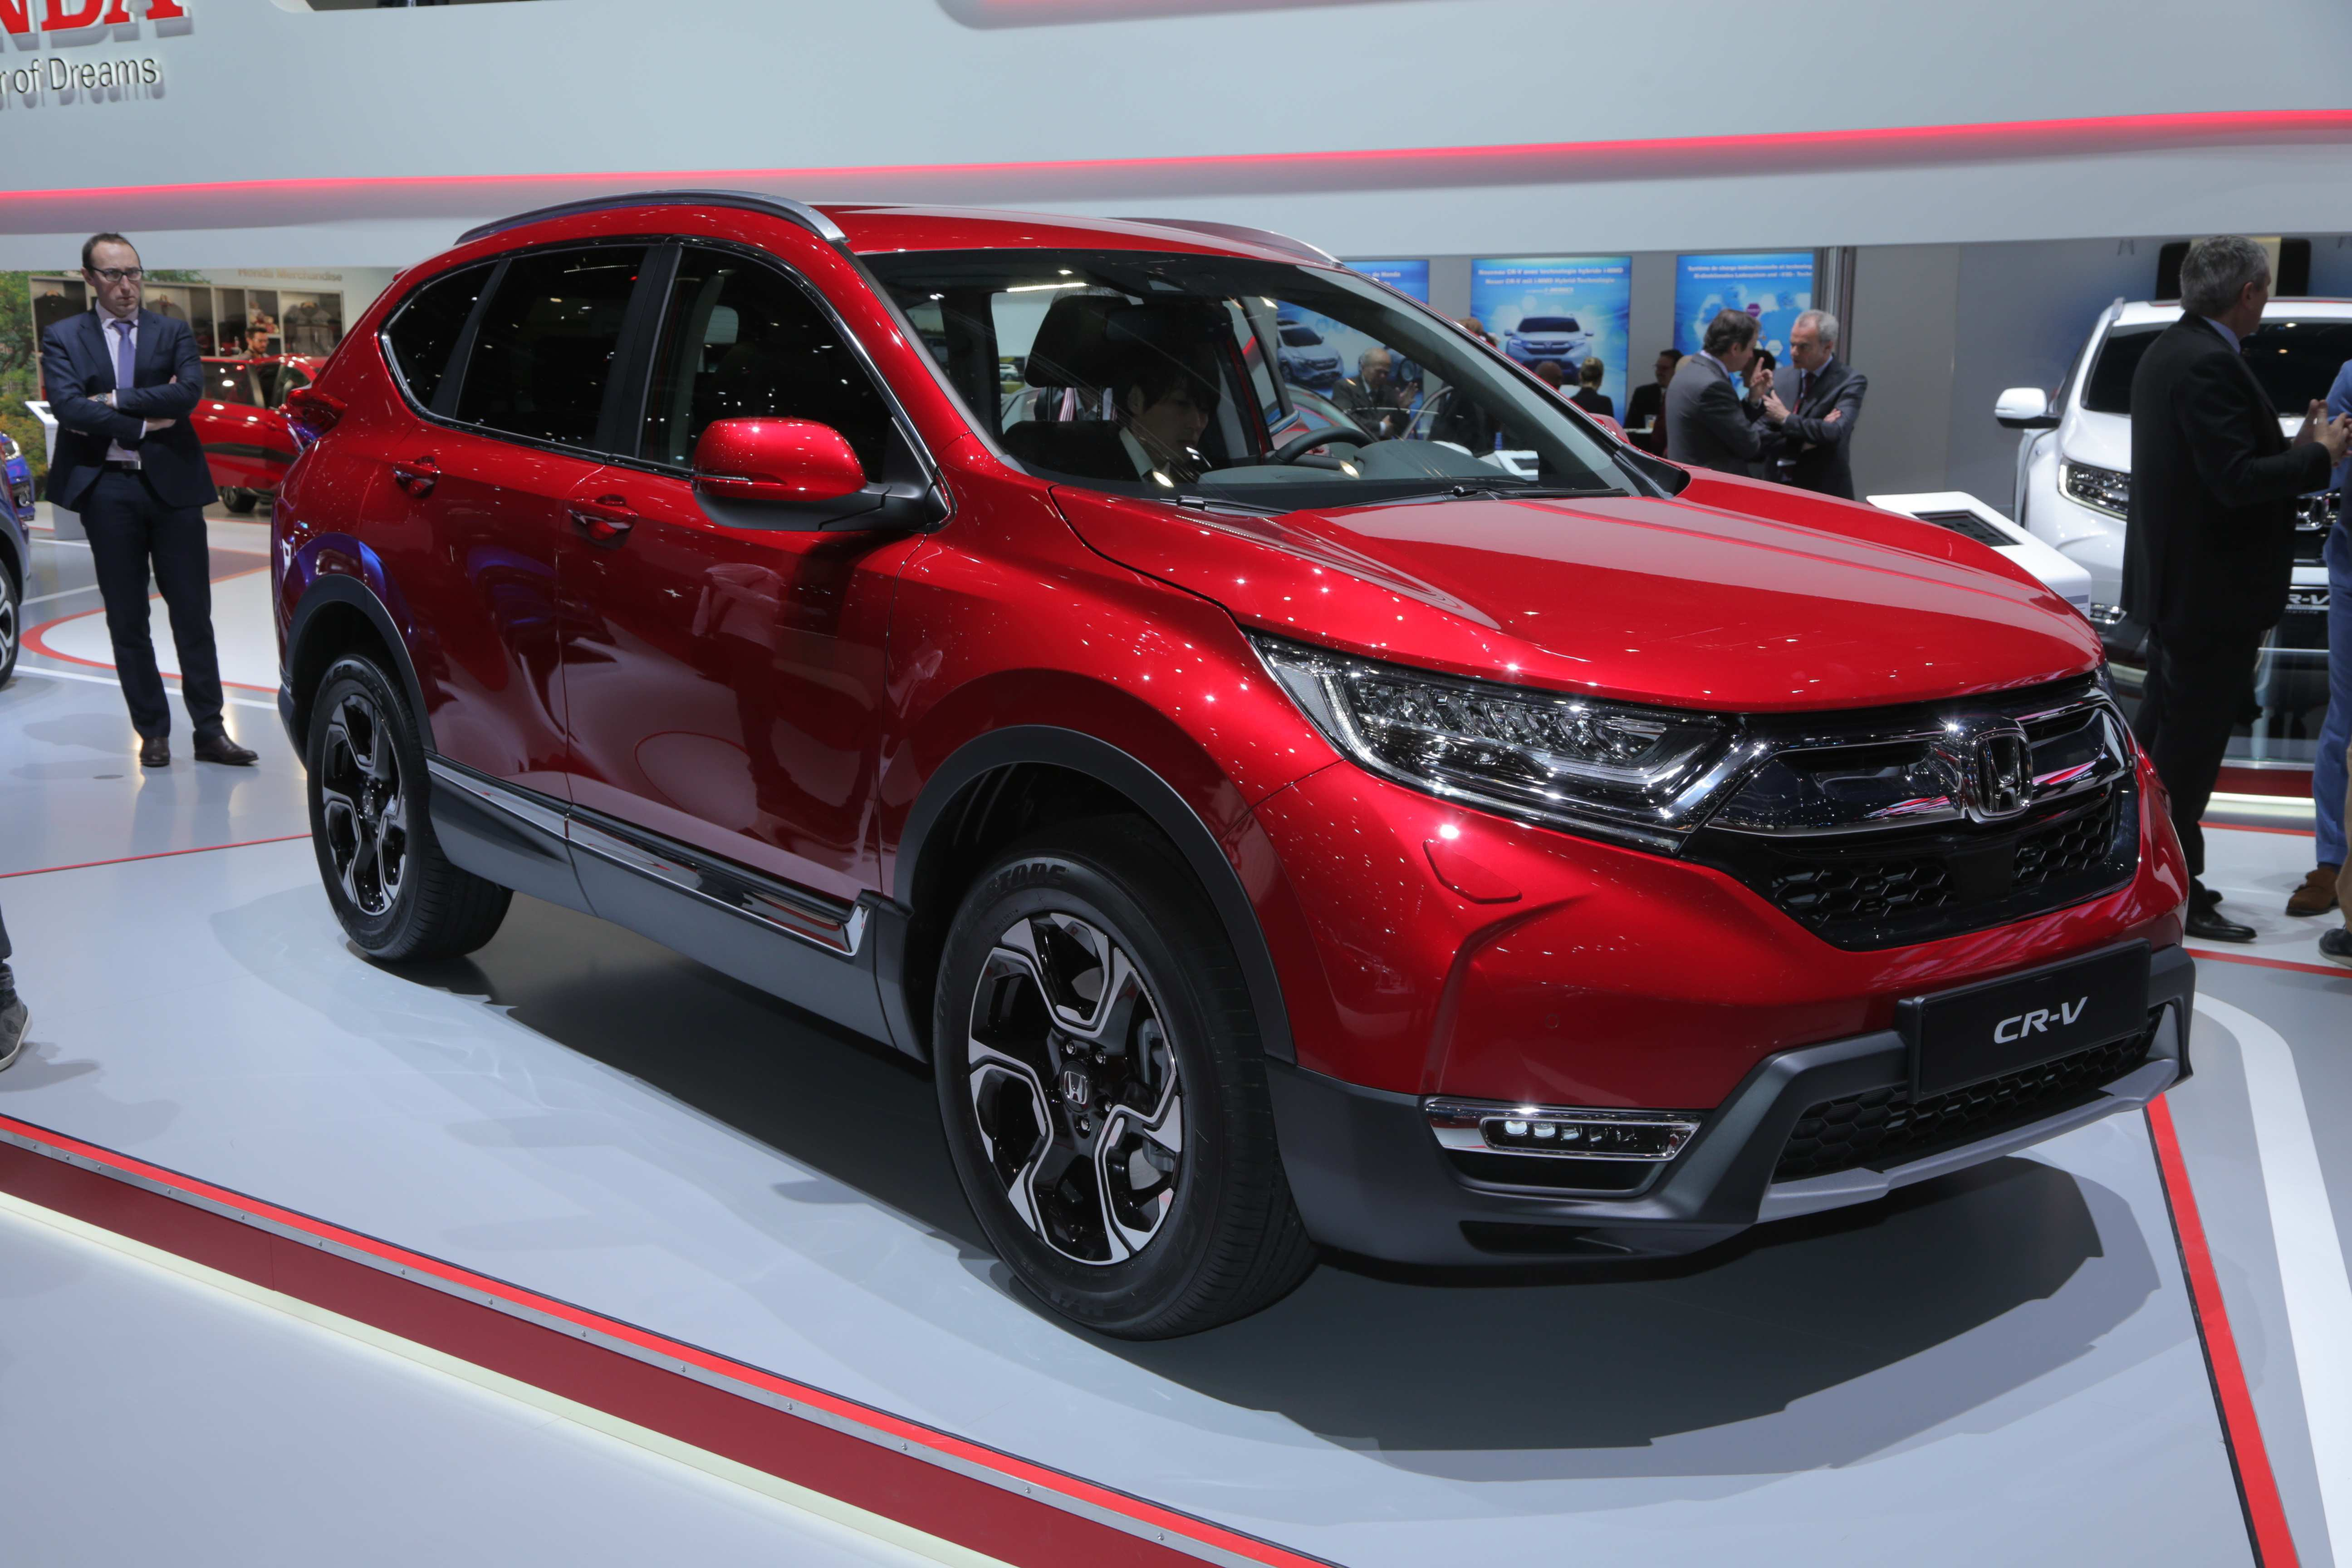 54 Concept of The Crv Honda 2019 Release Research New for The Crv Honda 2019 Release